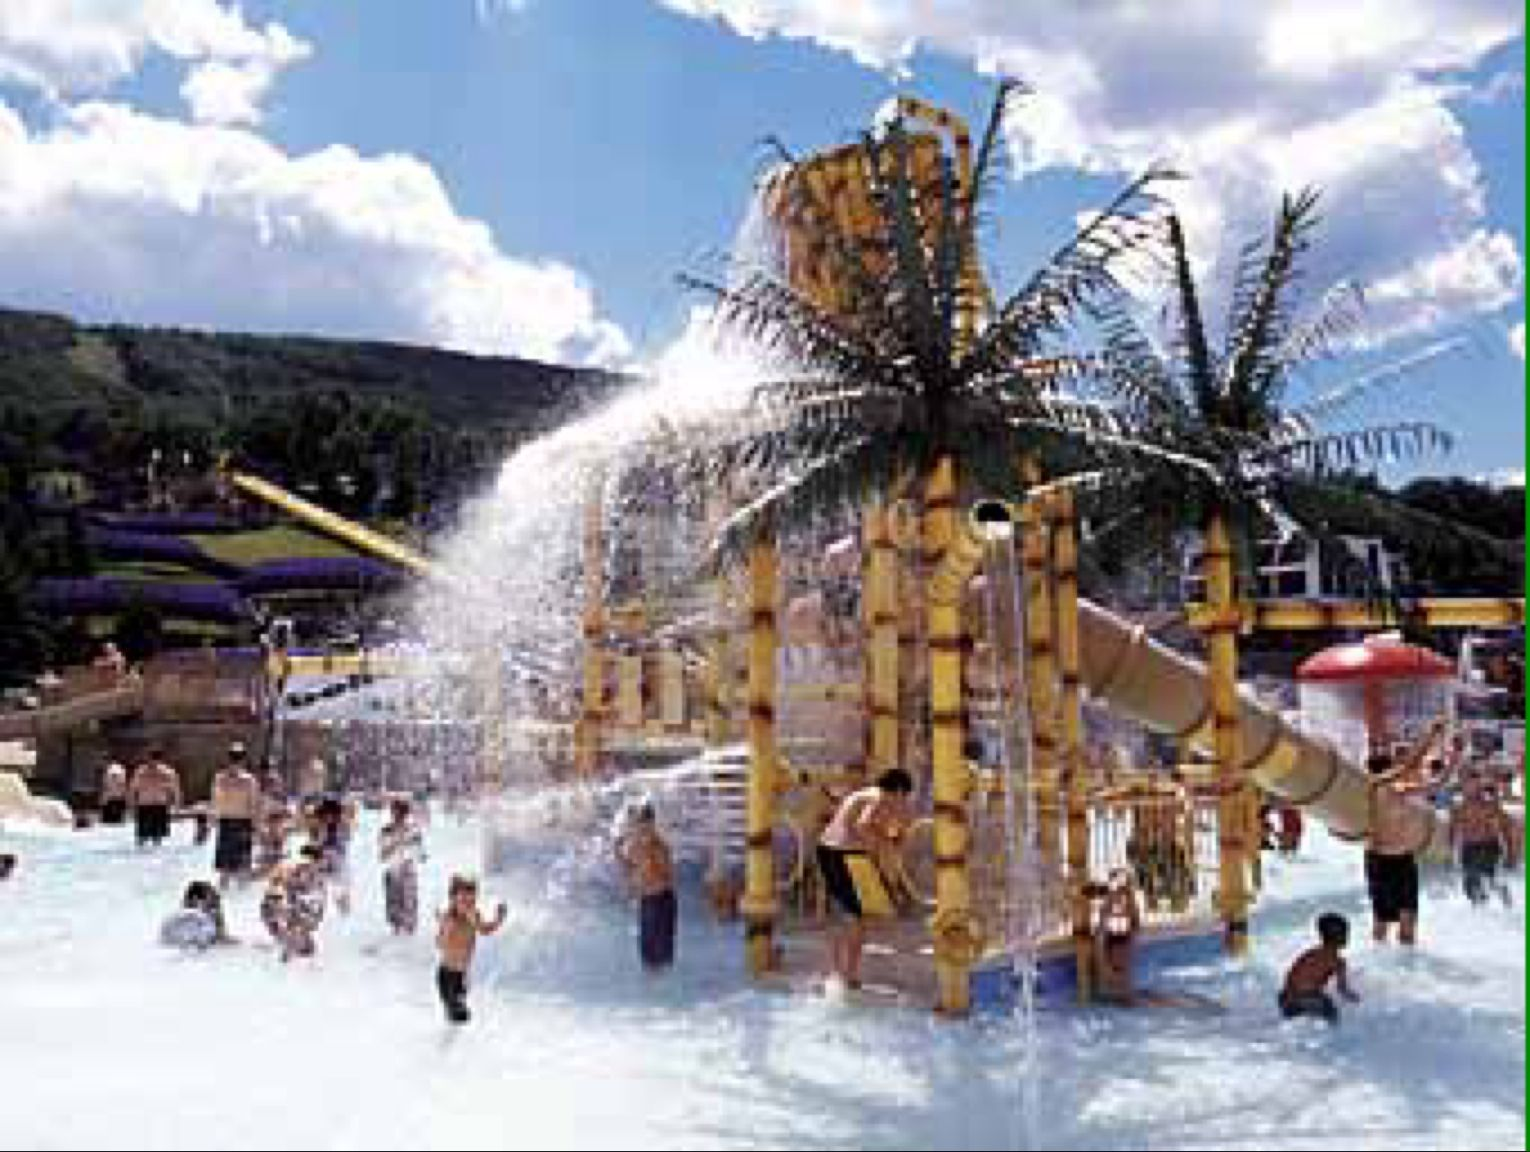 Pin On Top 10 Waterparks Near Nyc